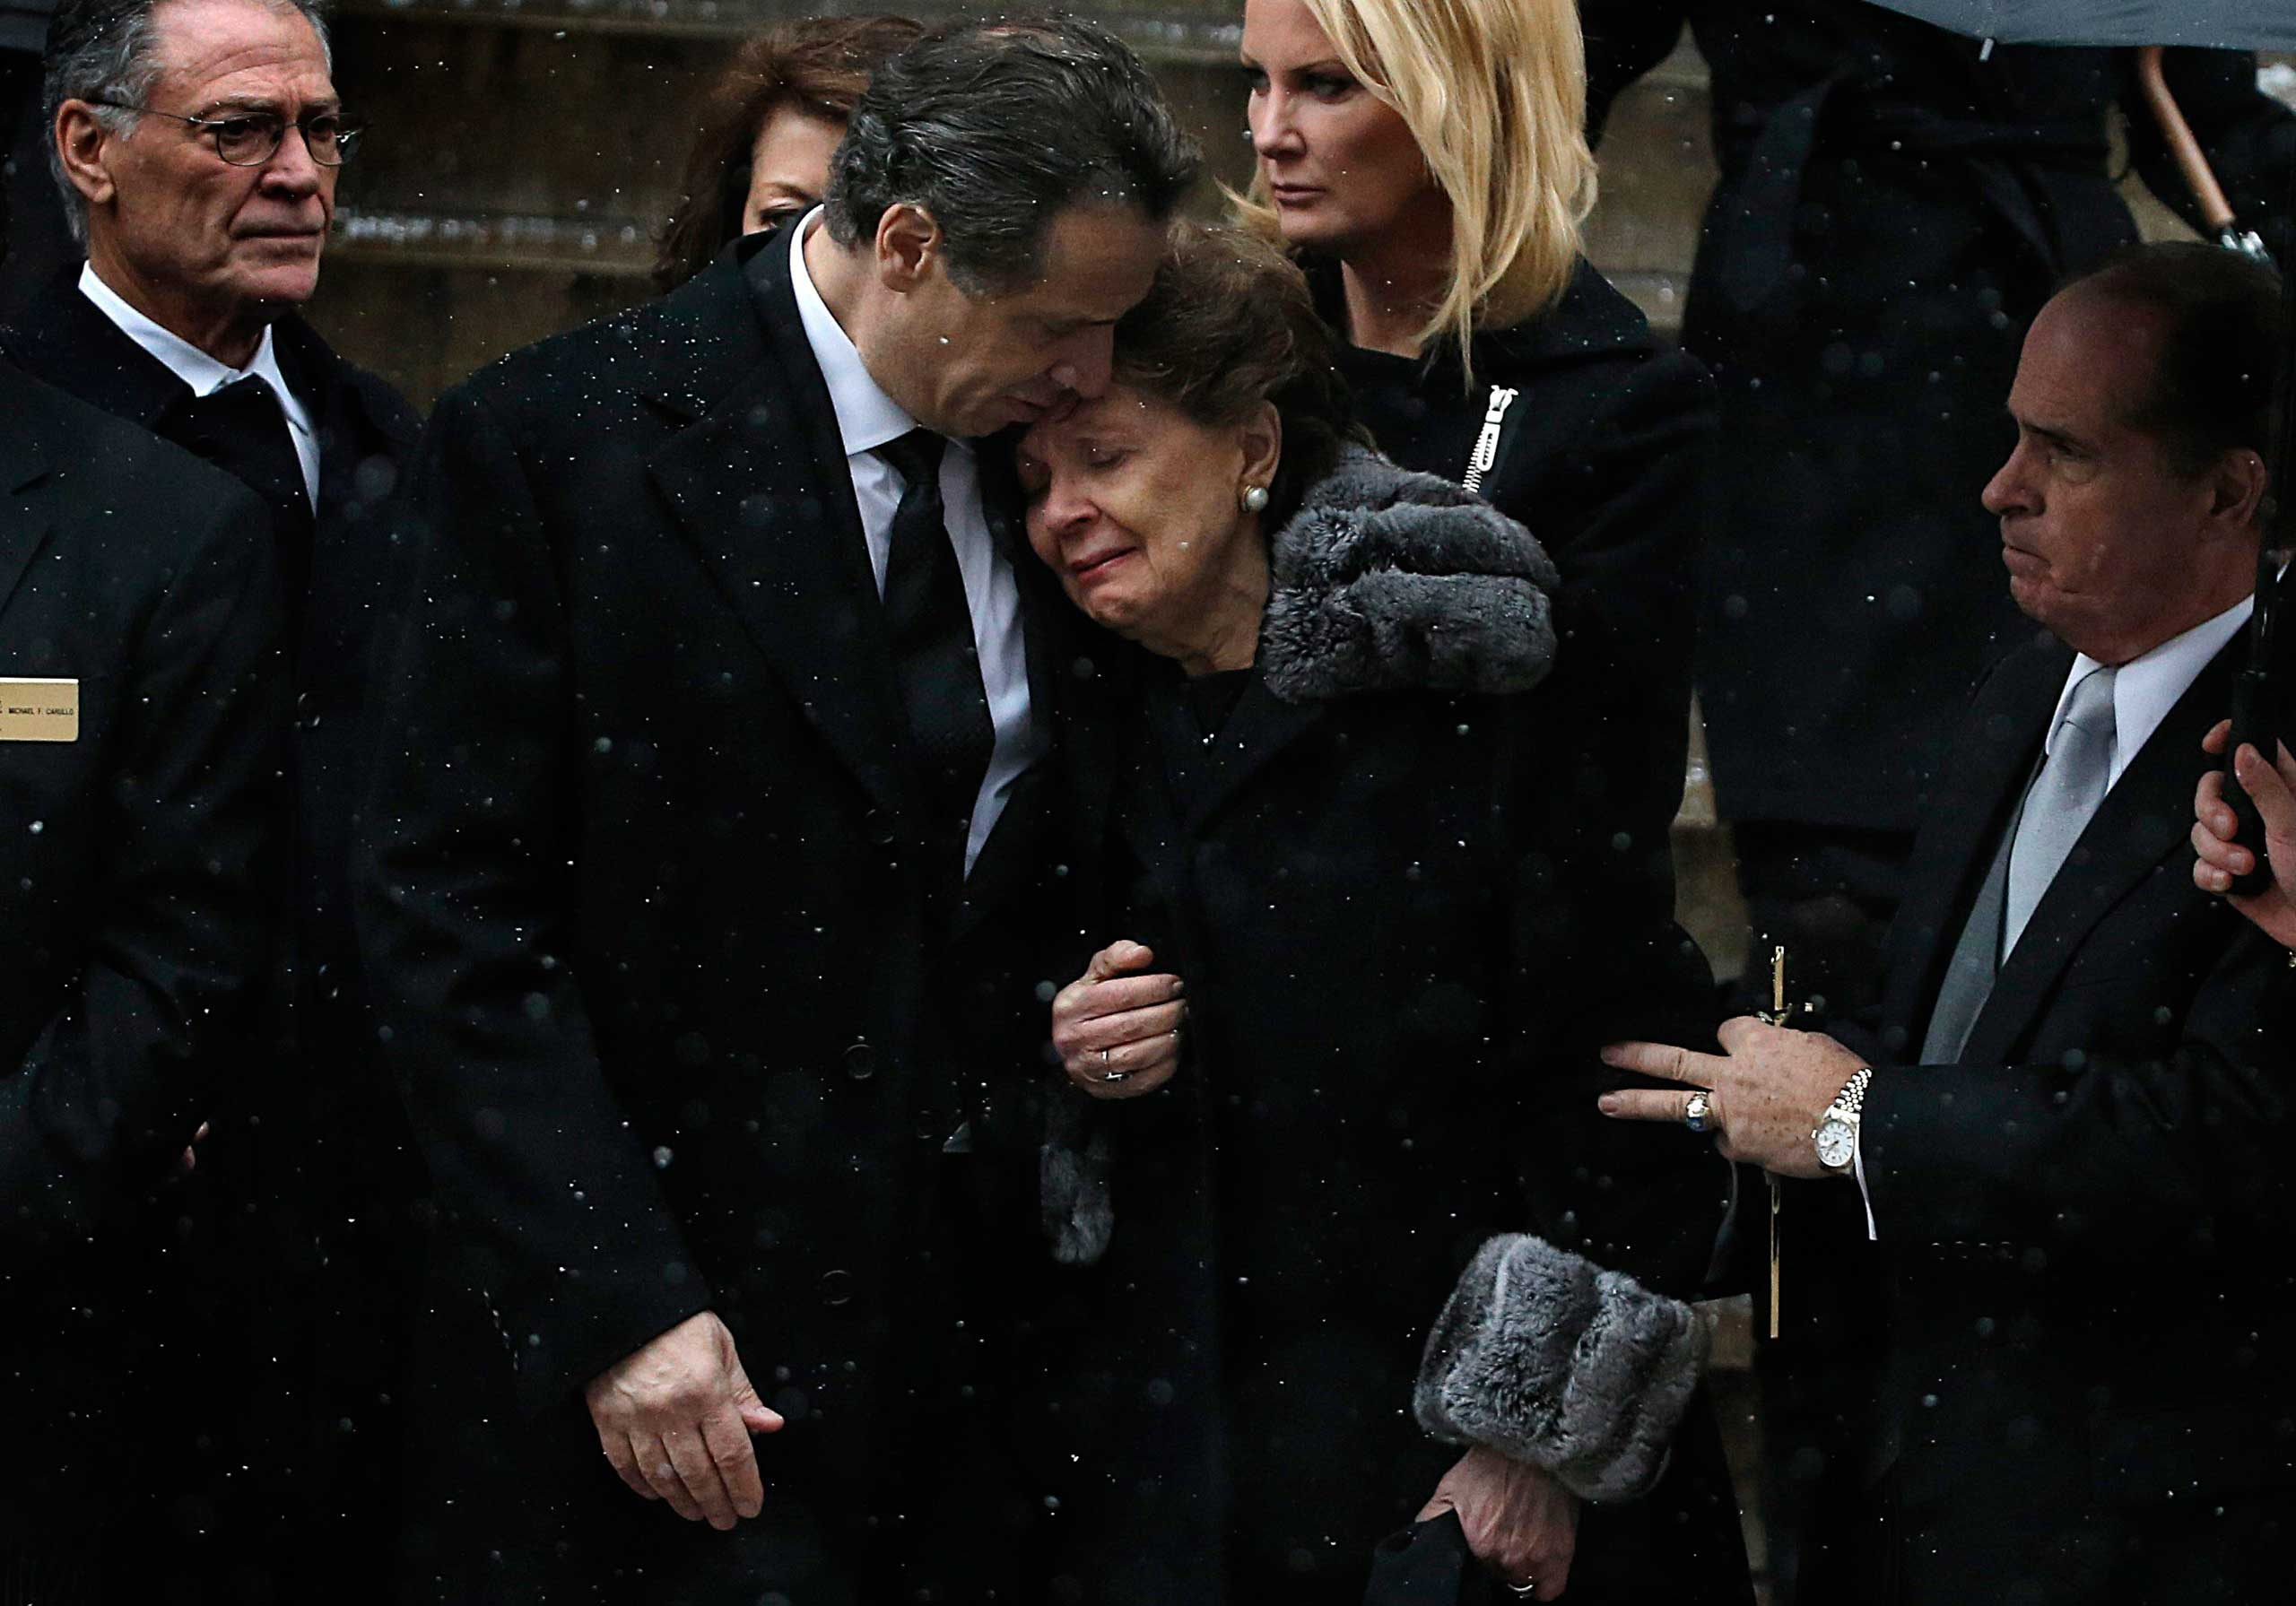 Jan. 6, 2015. New York Governor Andrew Cuomo comforts his mother Matilda outside the St. Ignatius Loyola Church after a funeral service for his late father, former Governor Mario Cuomo, in New York.